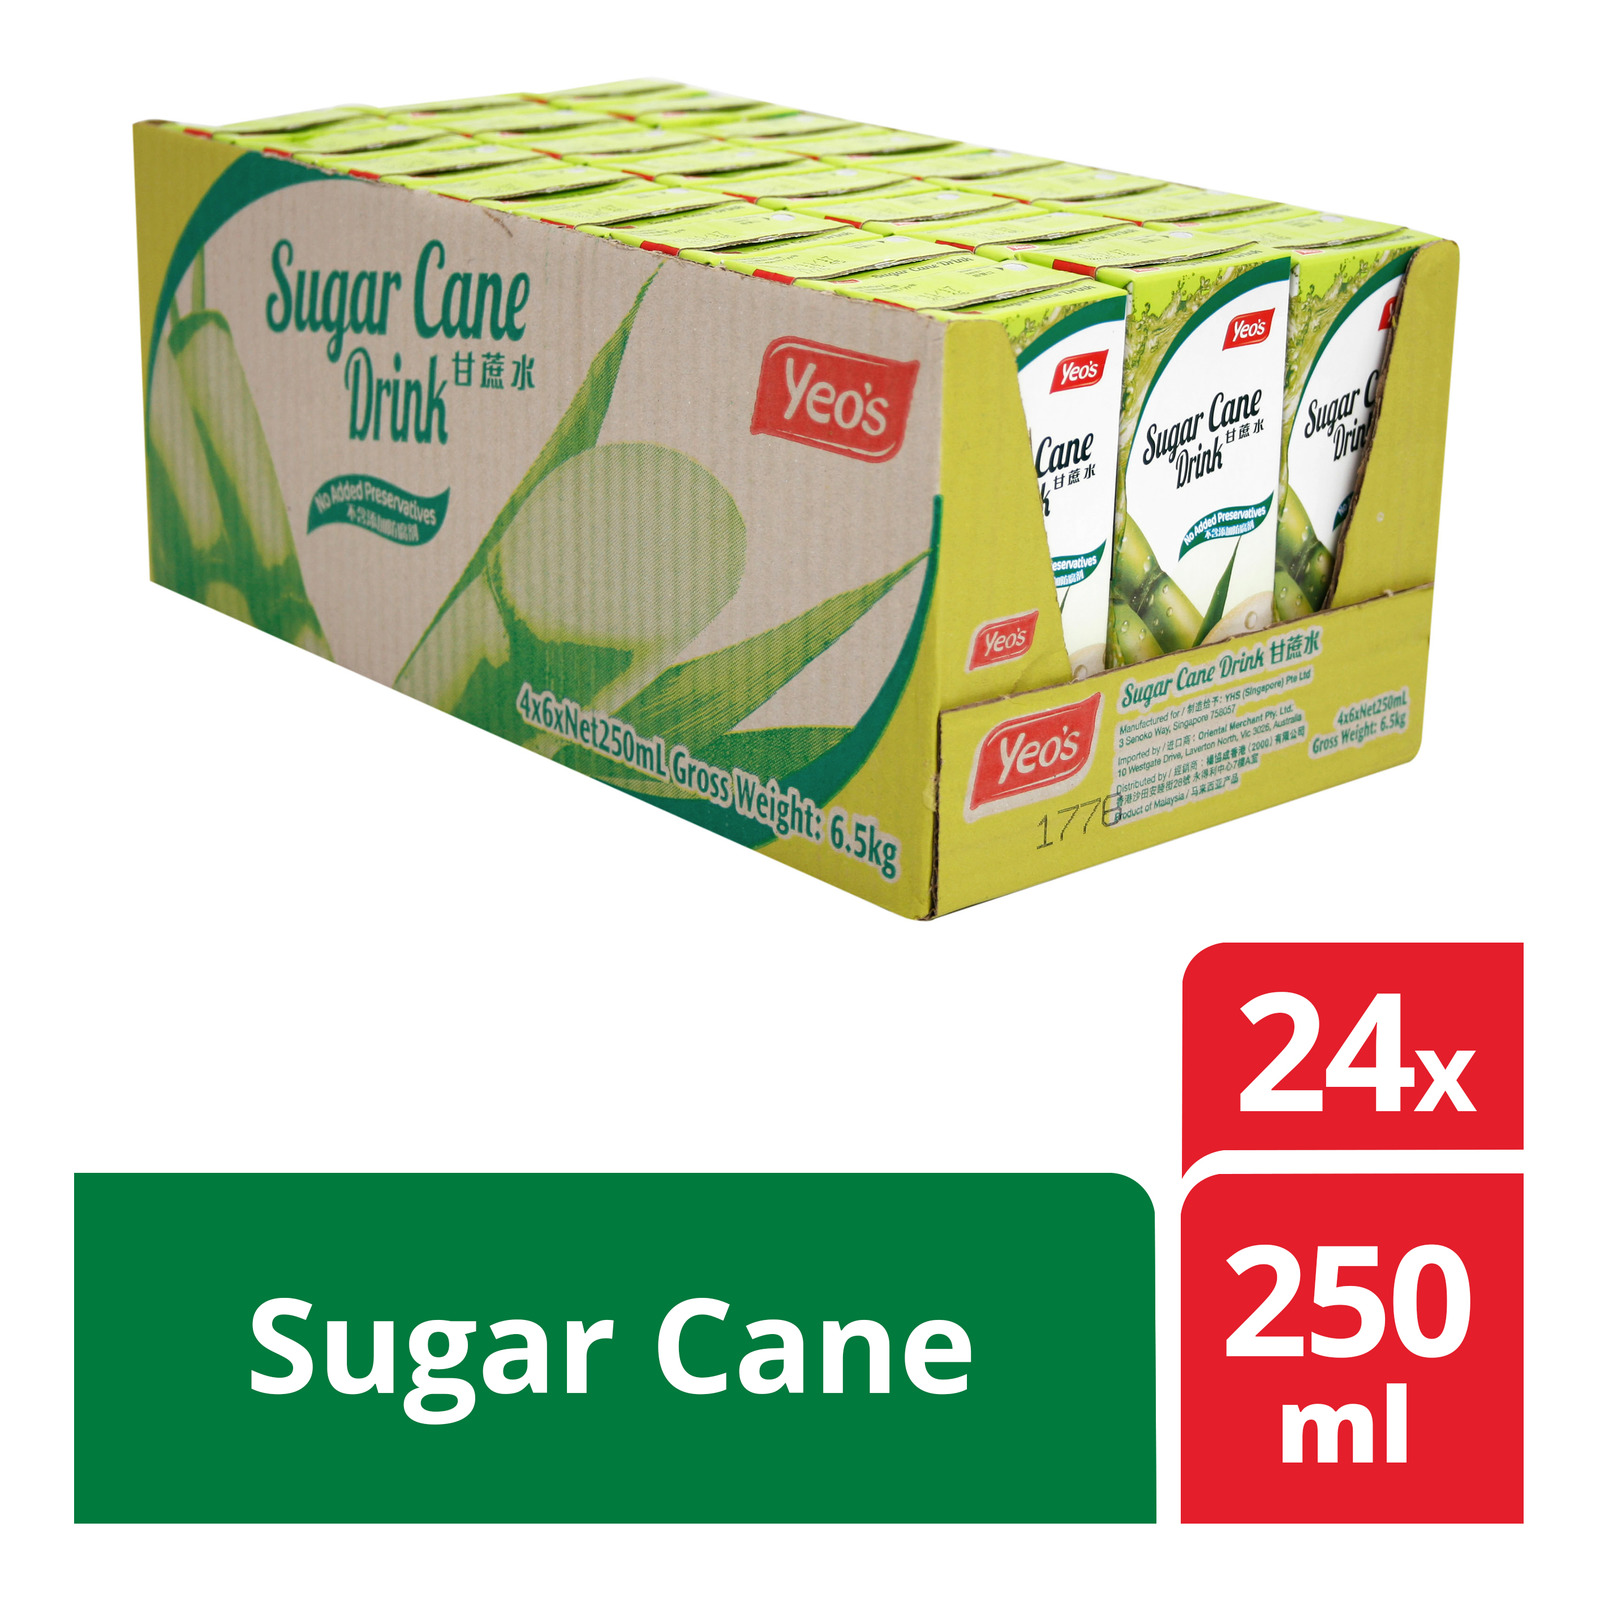 Yeo's Packet Drink - Sugar Cane